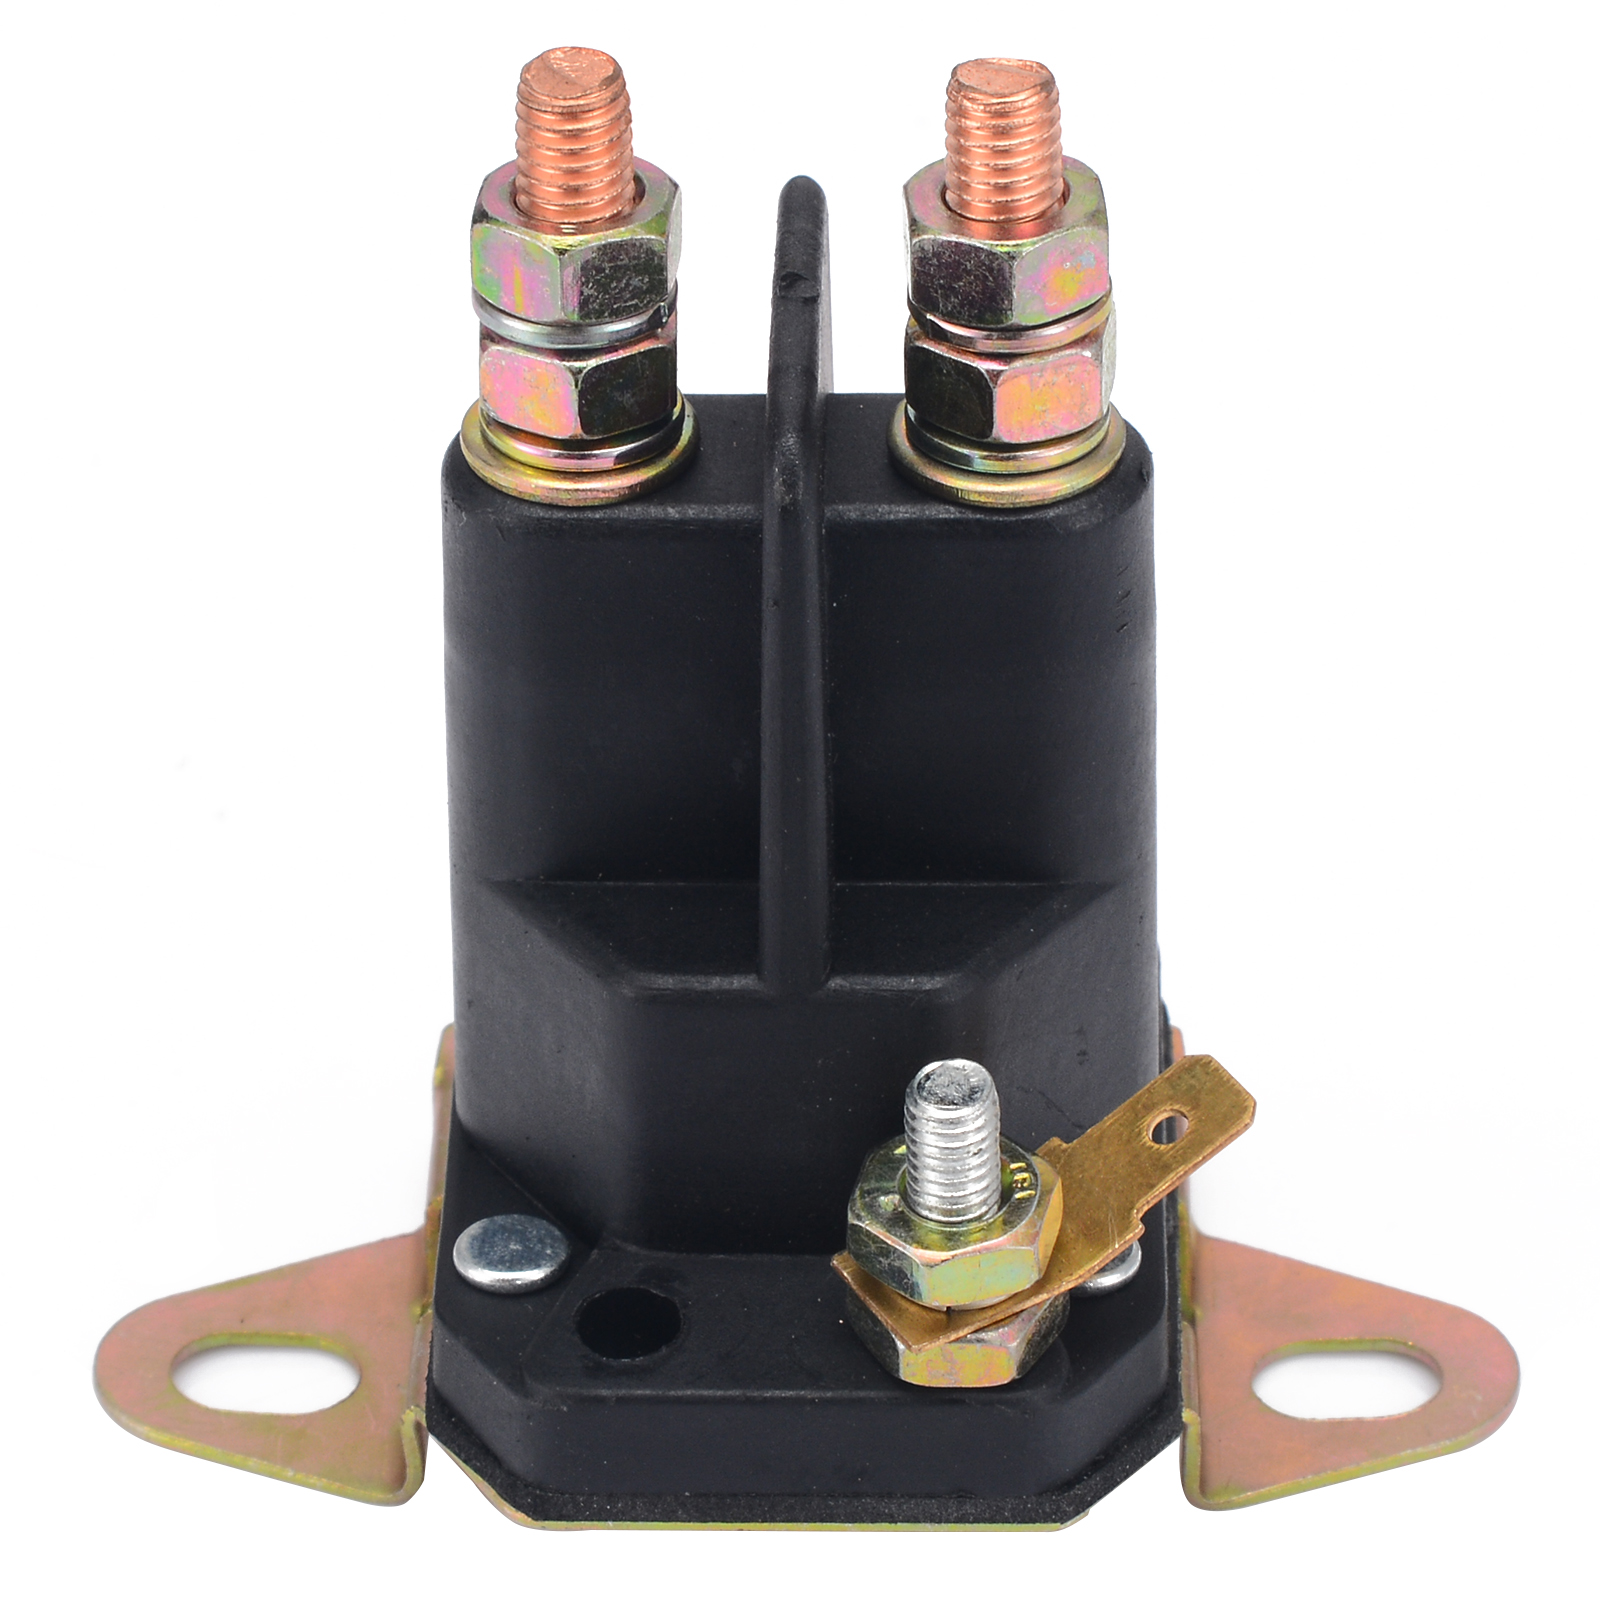 1Pcs Solenoid Relay Switch Universal 3Pins Starter Solenoid Relay Switch Replace For MTD Lawnmower For Electrical Equipment1Pcs Solenoid Relay Switch Universal 3Pins Starter Solenoid Relay Switch Replace For MTD Lawnmower For Electrical Equipment